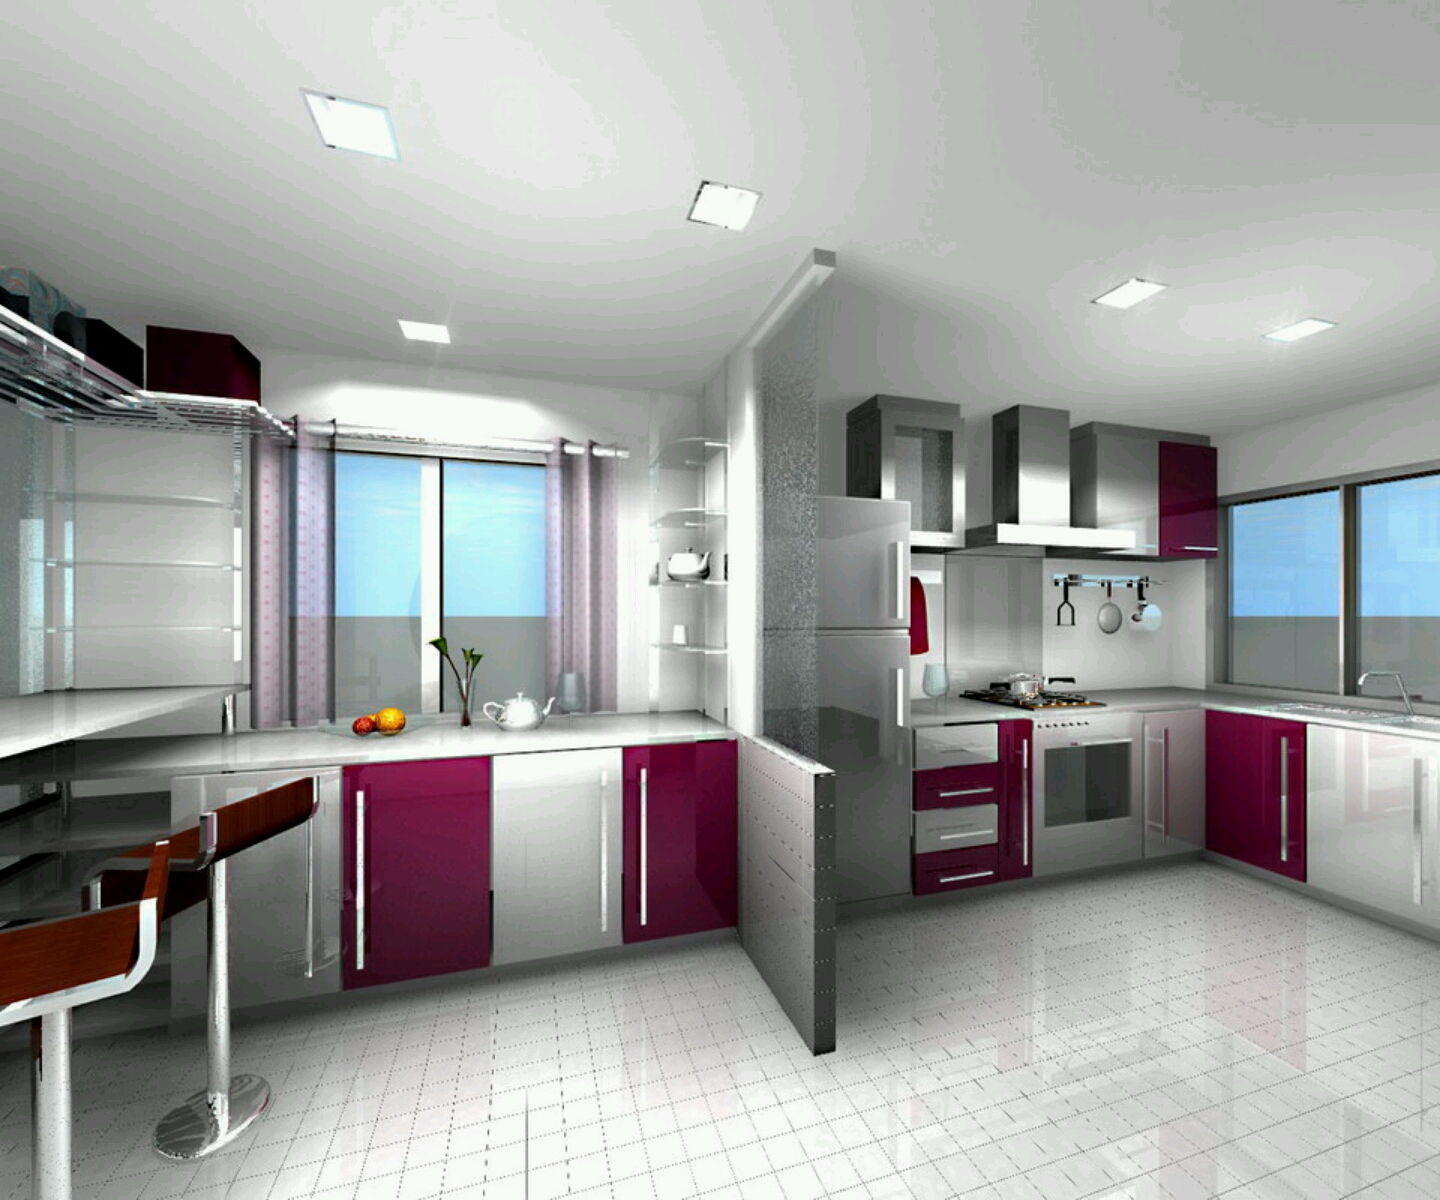 Kitchen Interior Design: Modern Homes Ultra Modern Kitchen Designs Ideas.